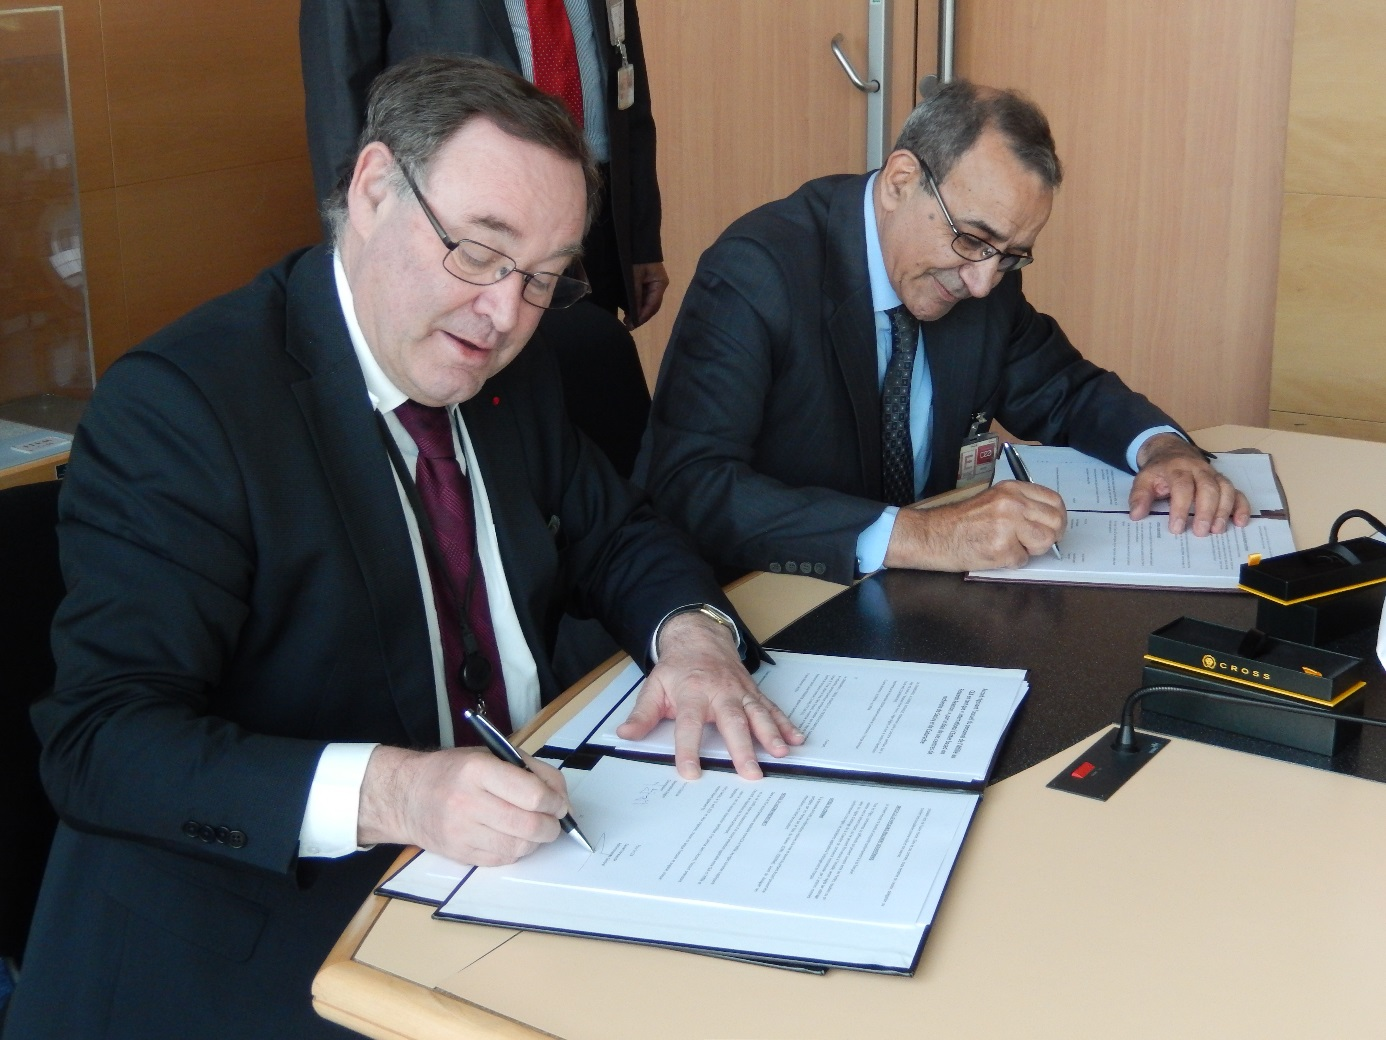 The CEA and Algeria's COMENA sign a nuclear research agreement